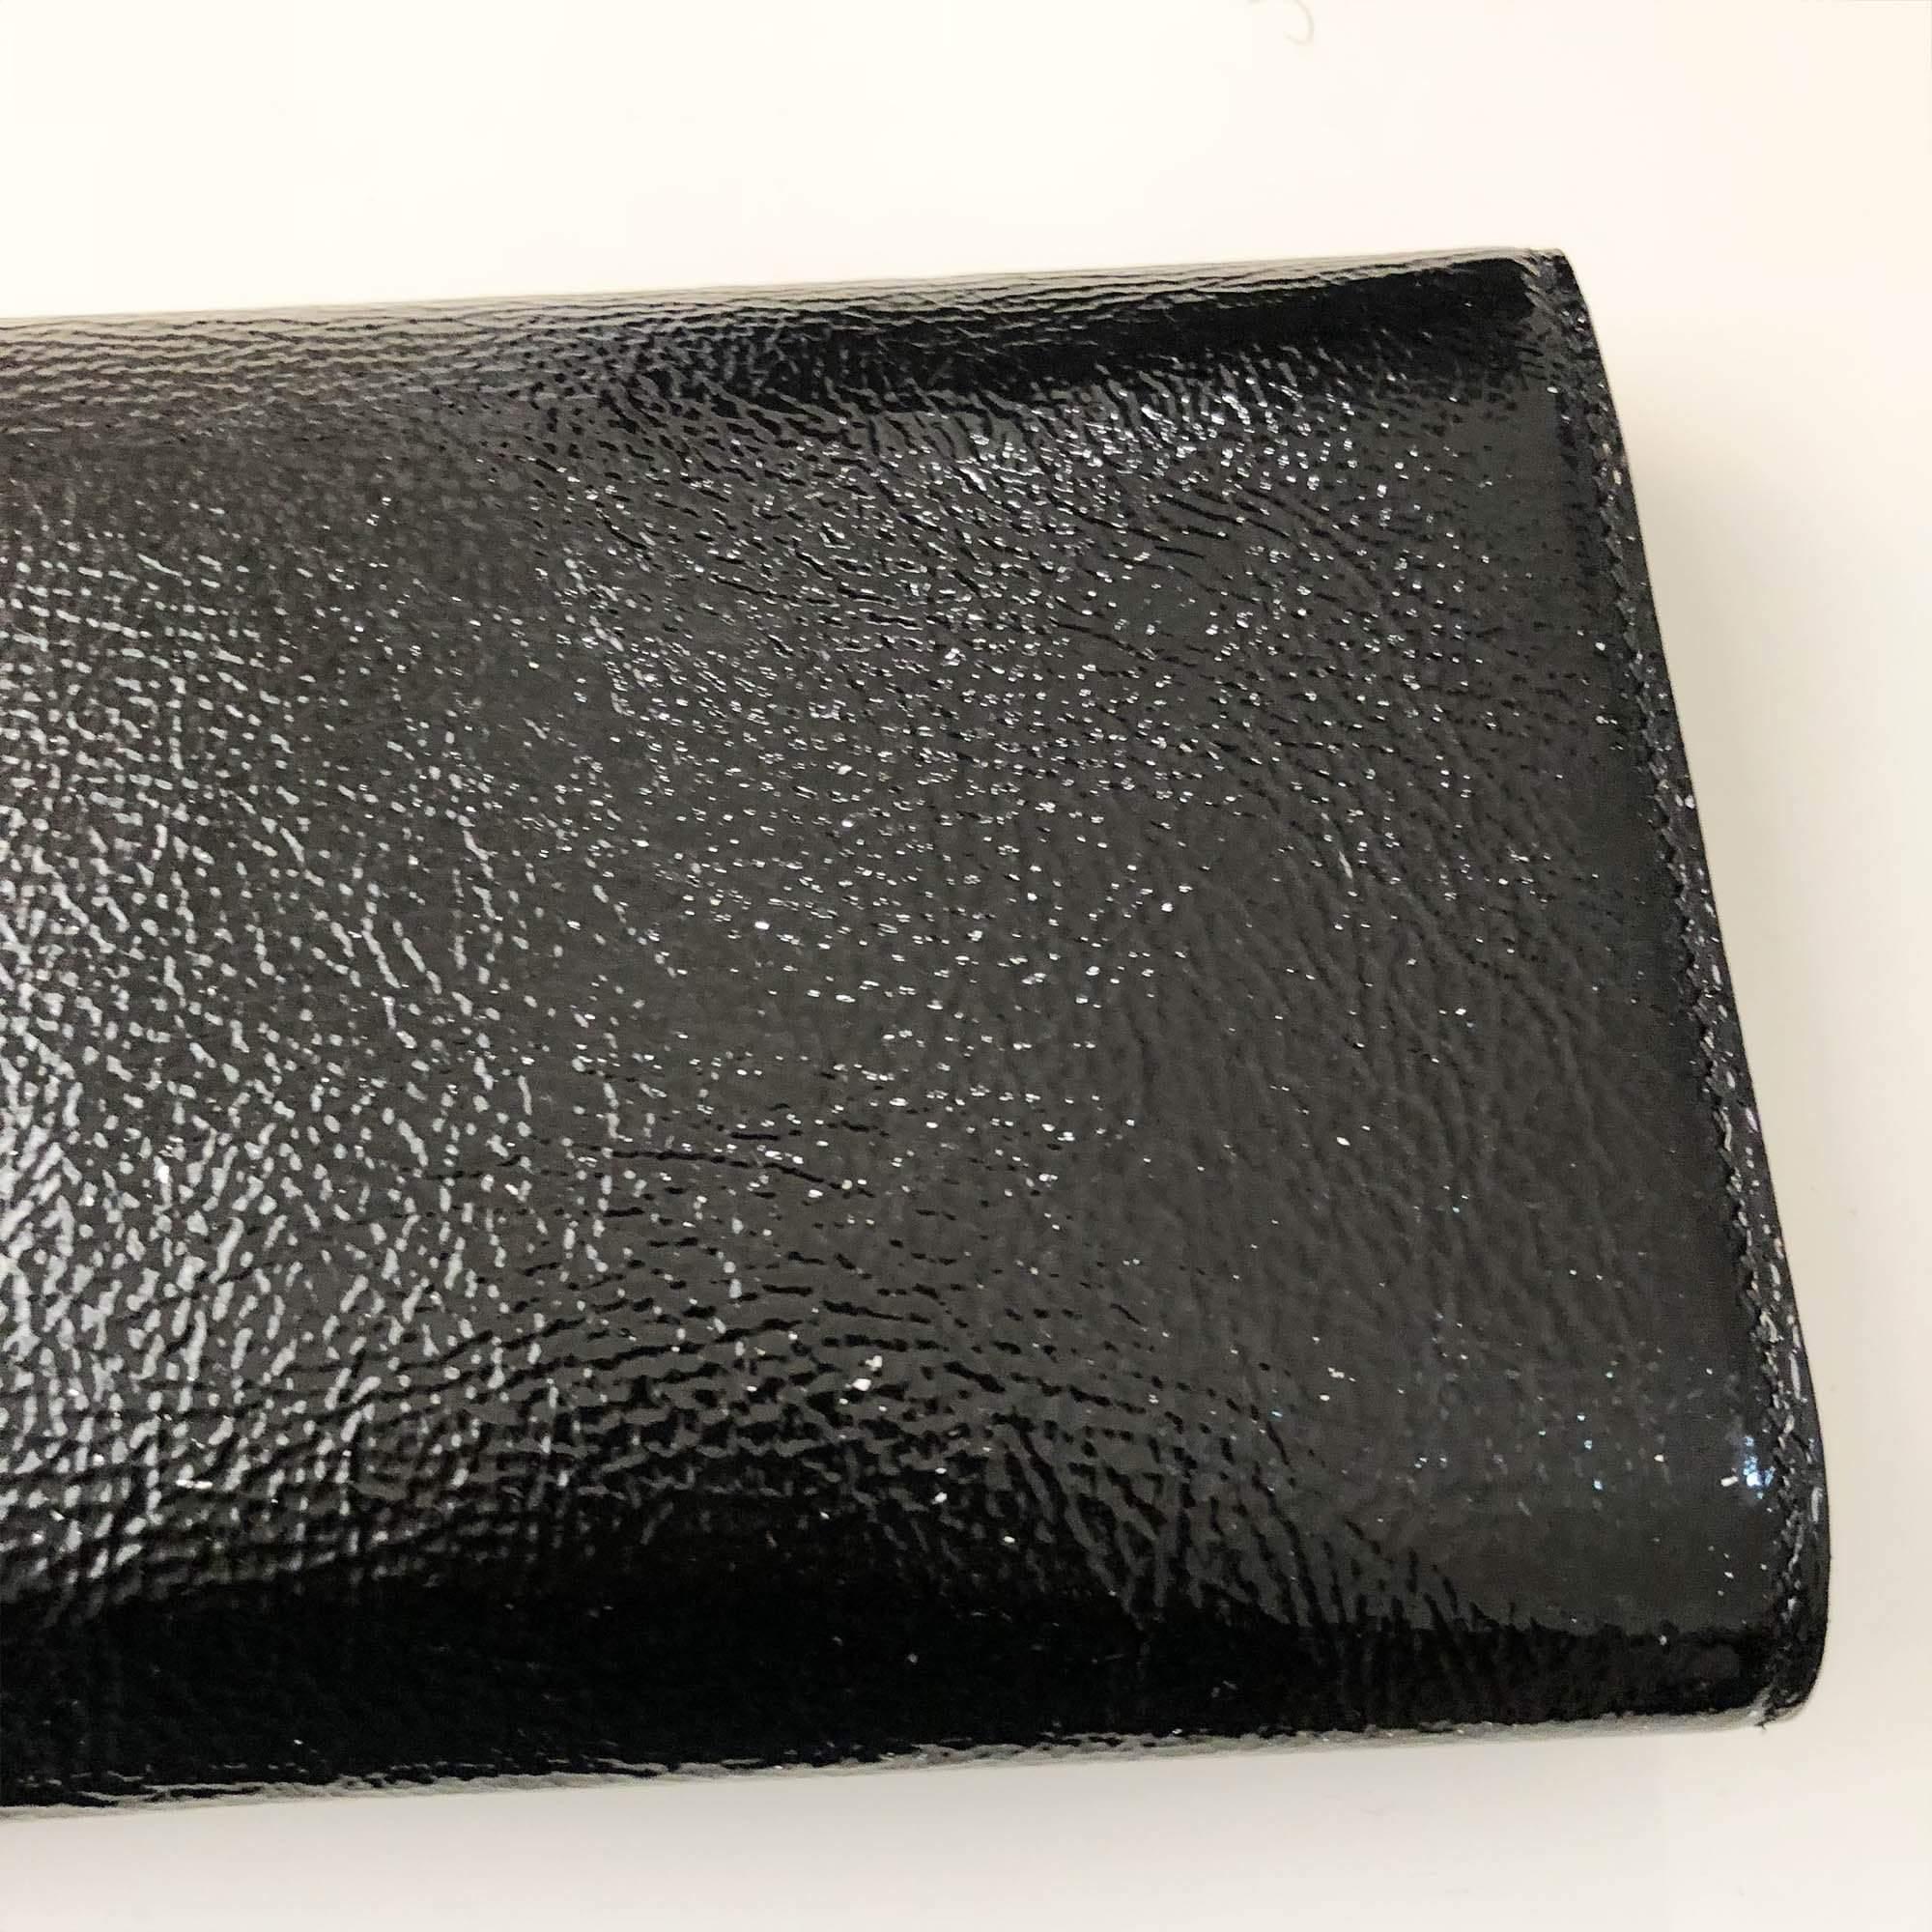 Saint Laurent Black Patent Leather Clutch